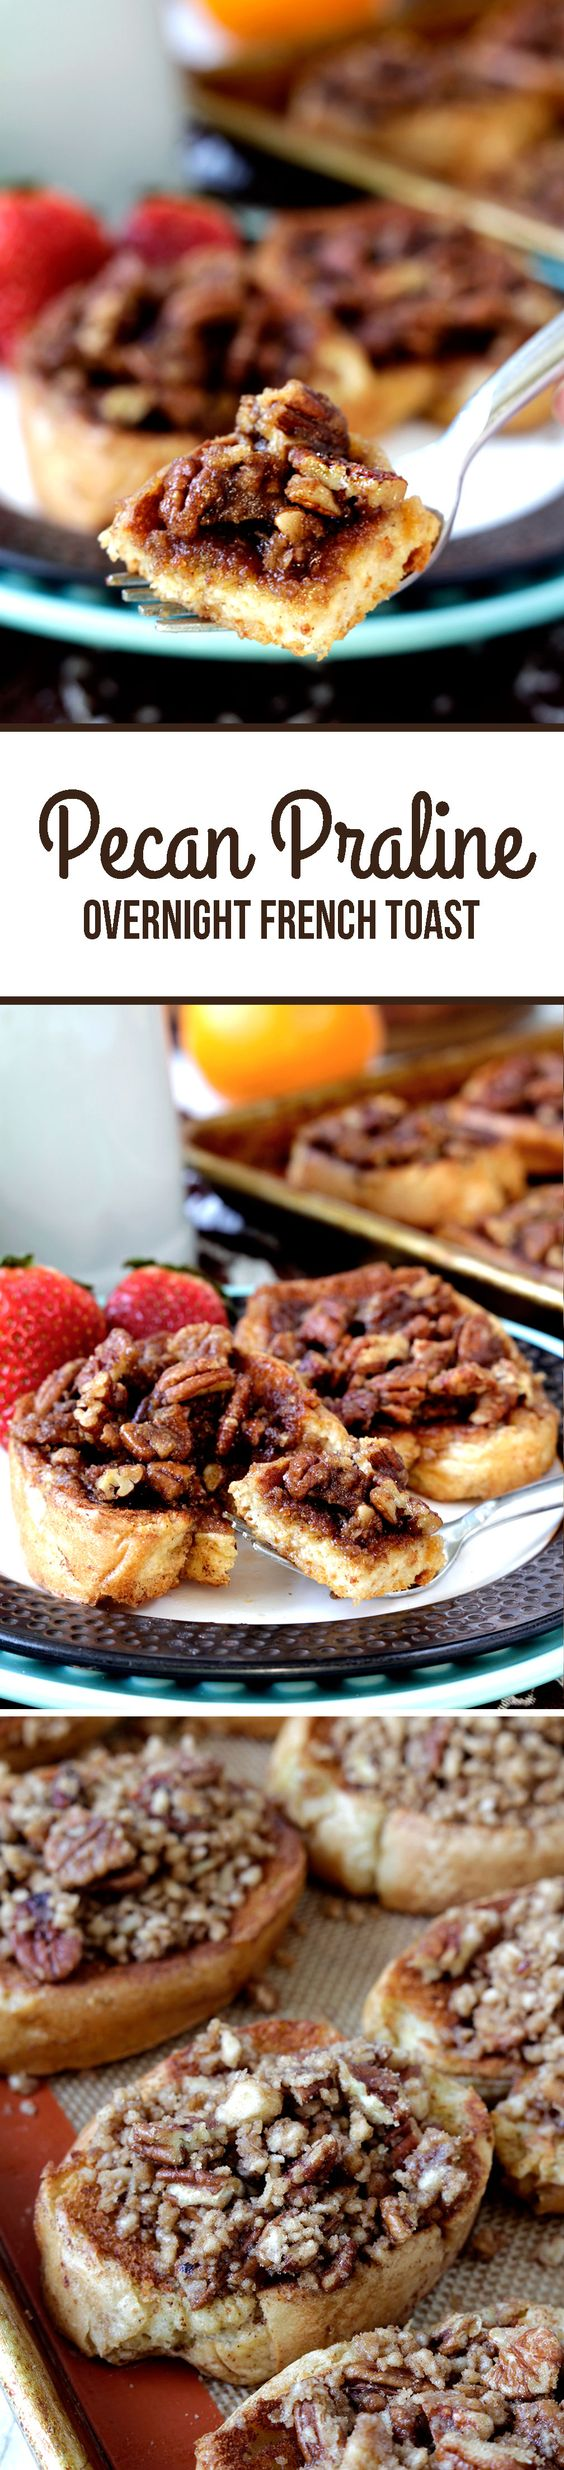 ... pecan pralines stress free stress brown sugar pecans french toast